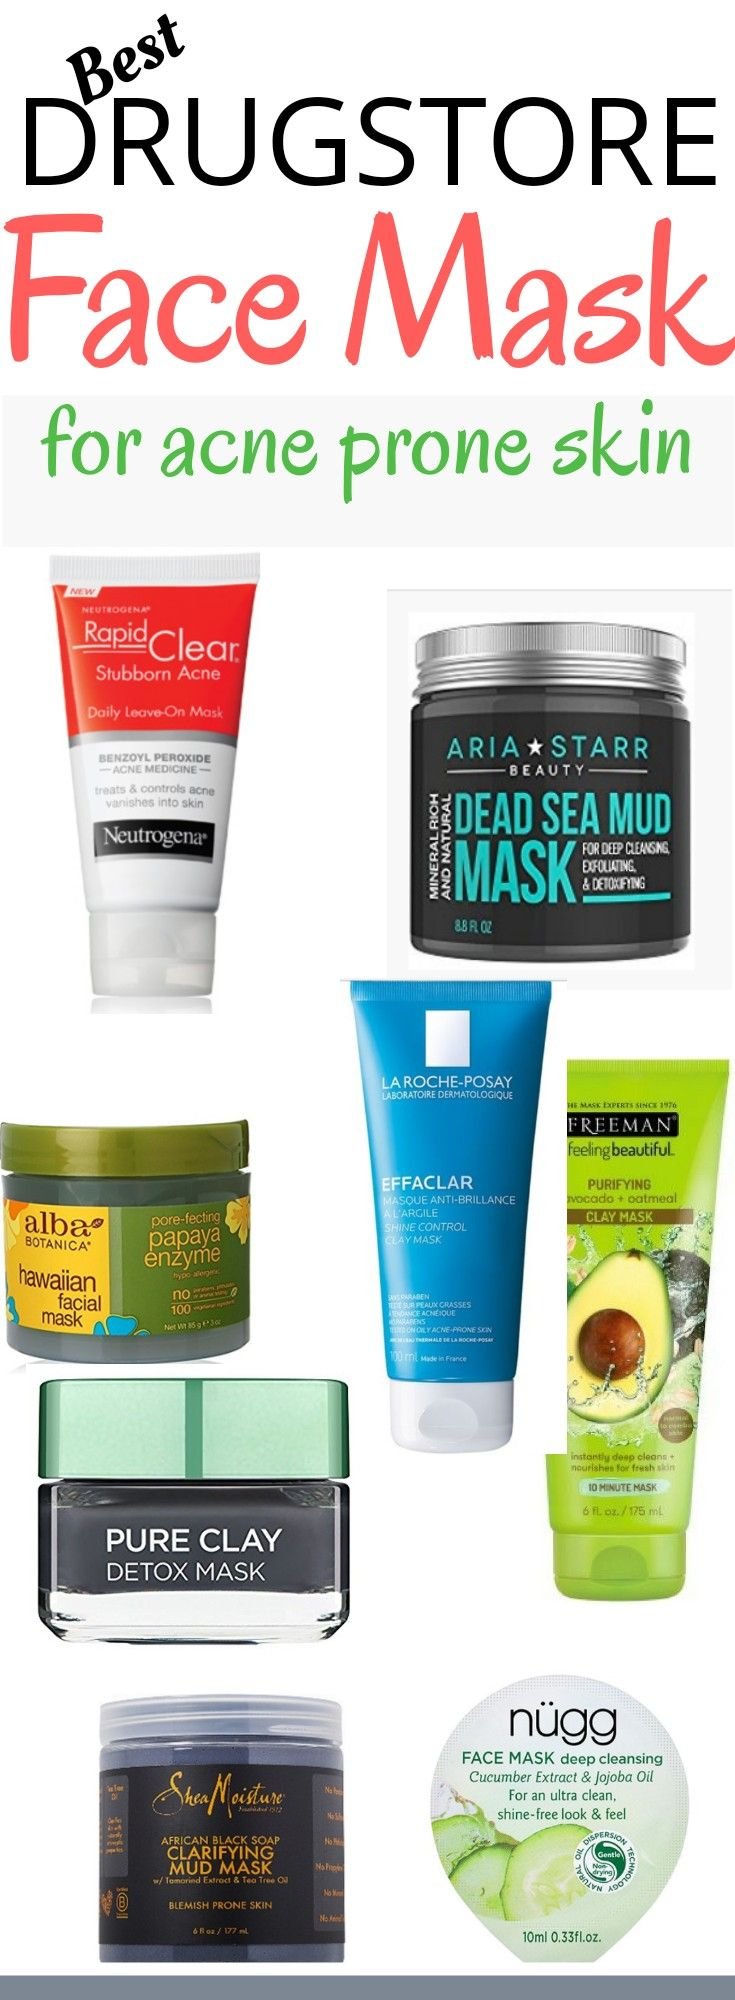 The Best Drugstore Face Mask  For Acne Prone Skin. (All under $20).